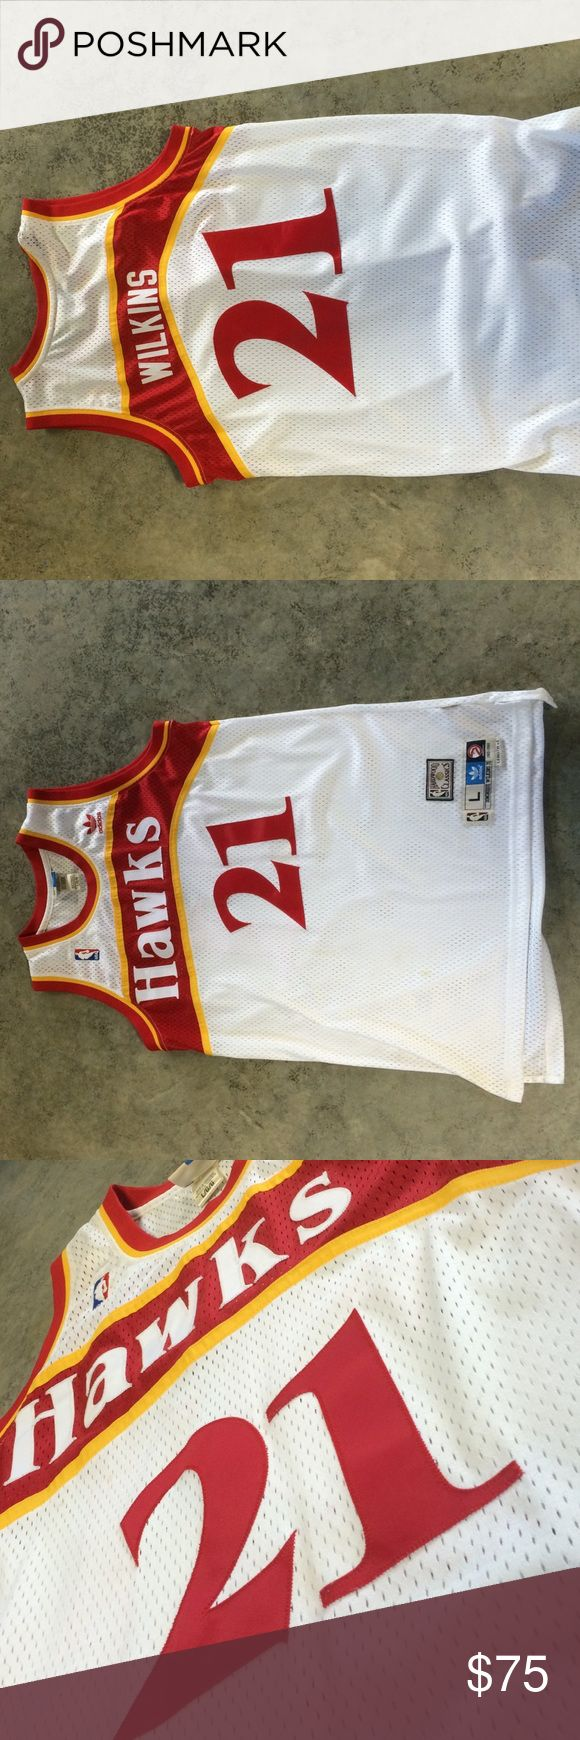 Dominque Wilkins Atlanta Hawks Jersey Letters and numbers are sewed on. White throwback jersey. Hardwood classic. Only been worn 2-3 times Adidas Other